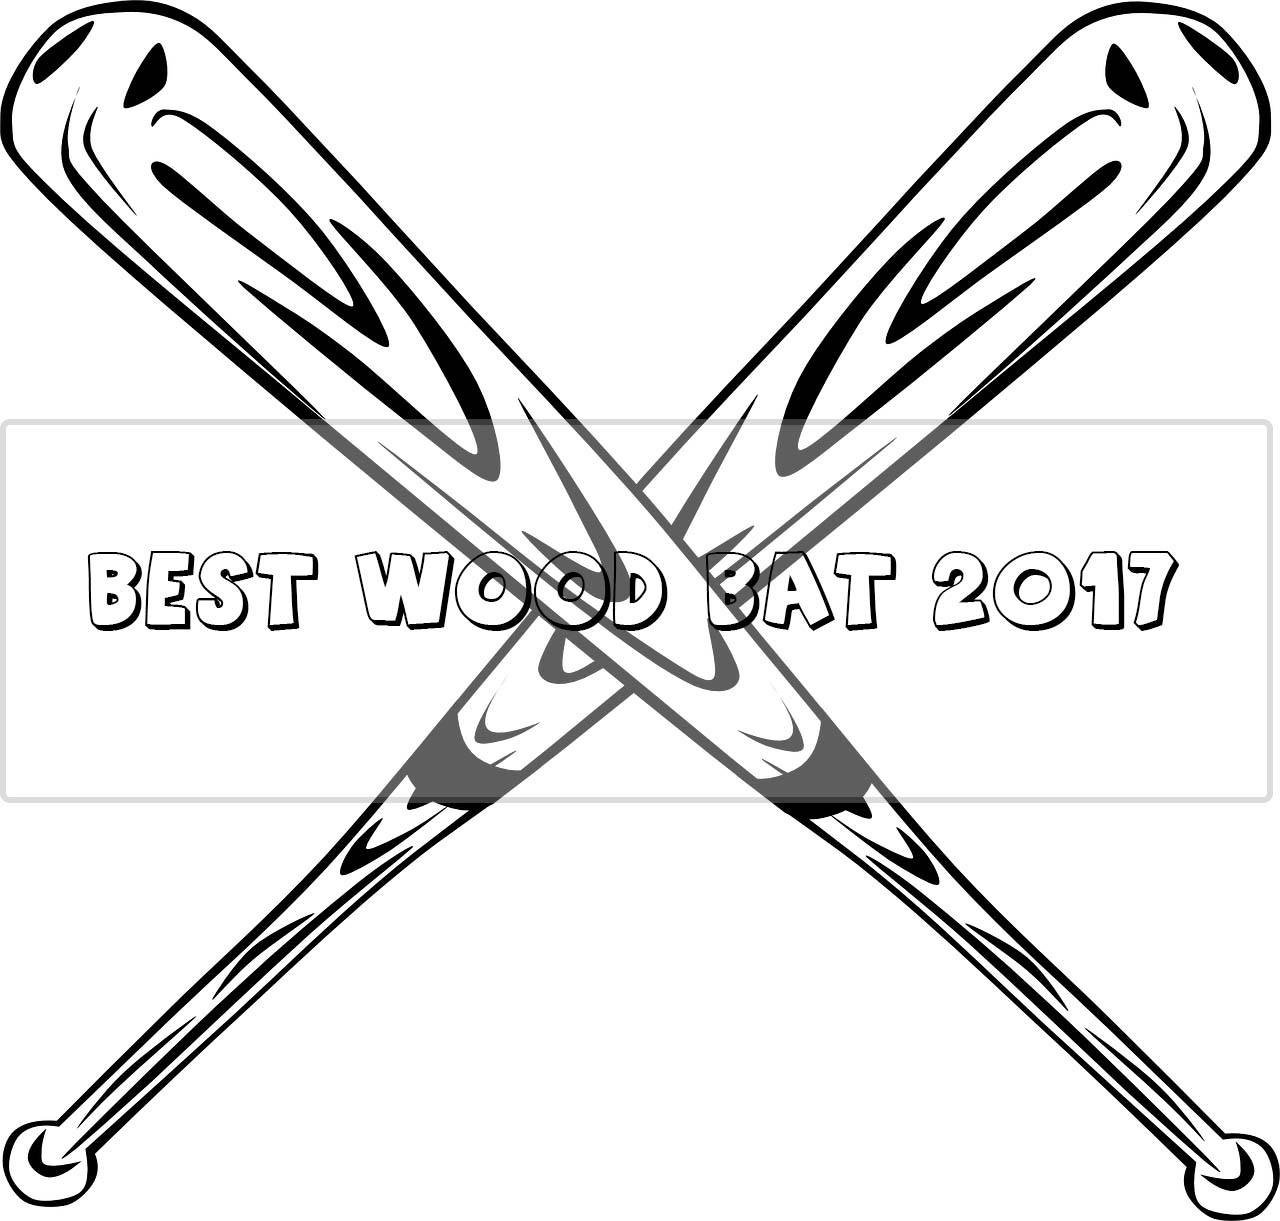 Best Wood Bat 2017